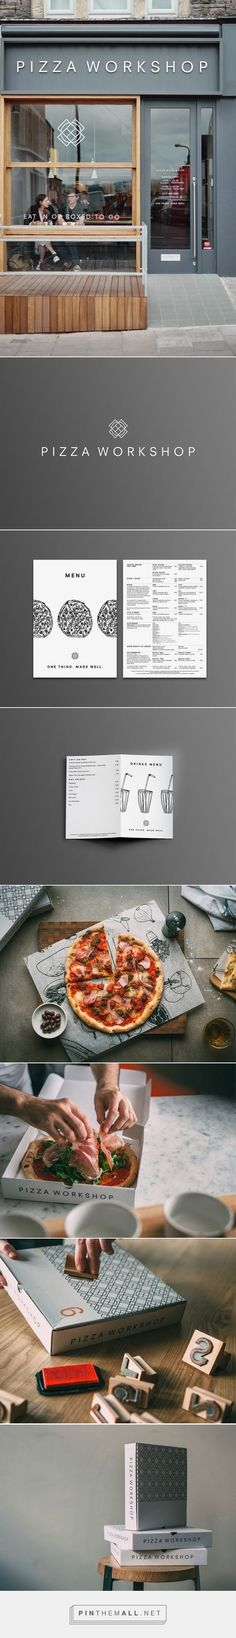 Pizza Workshop | Identity Designed - created via https://pinthemall.net: